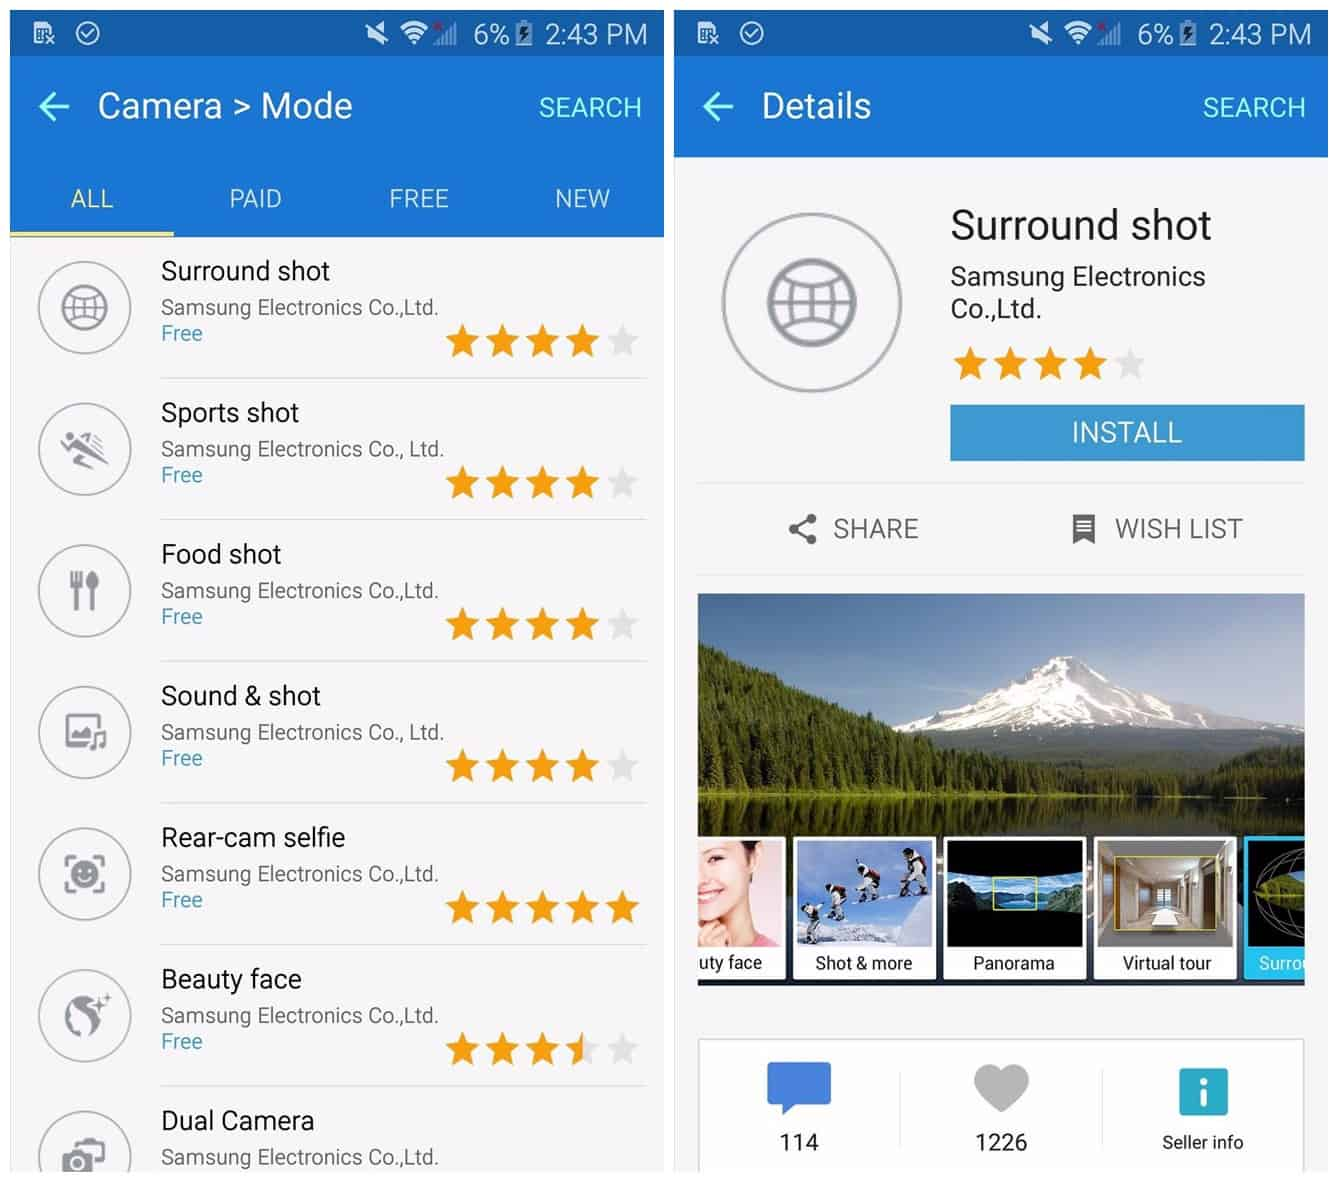 Download-additional-camera-modes-samsung-galaxy-s6-galaxy-s6-edge-2-original